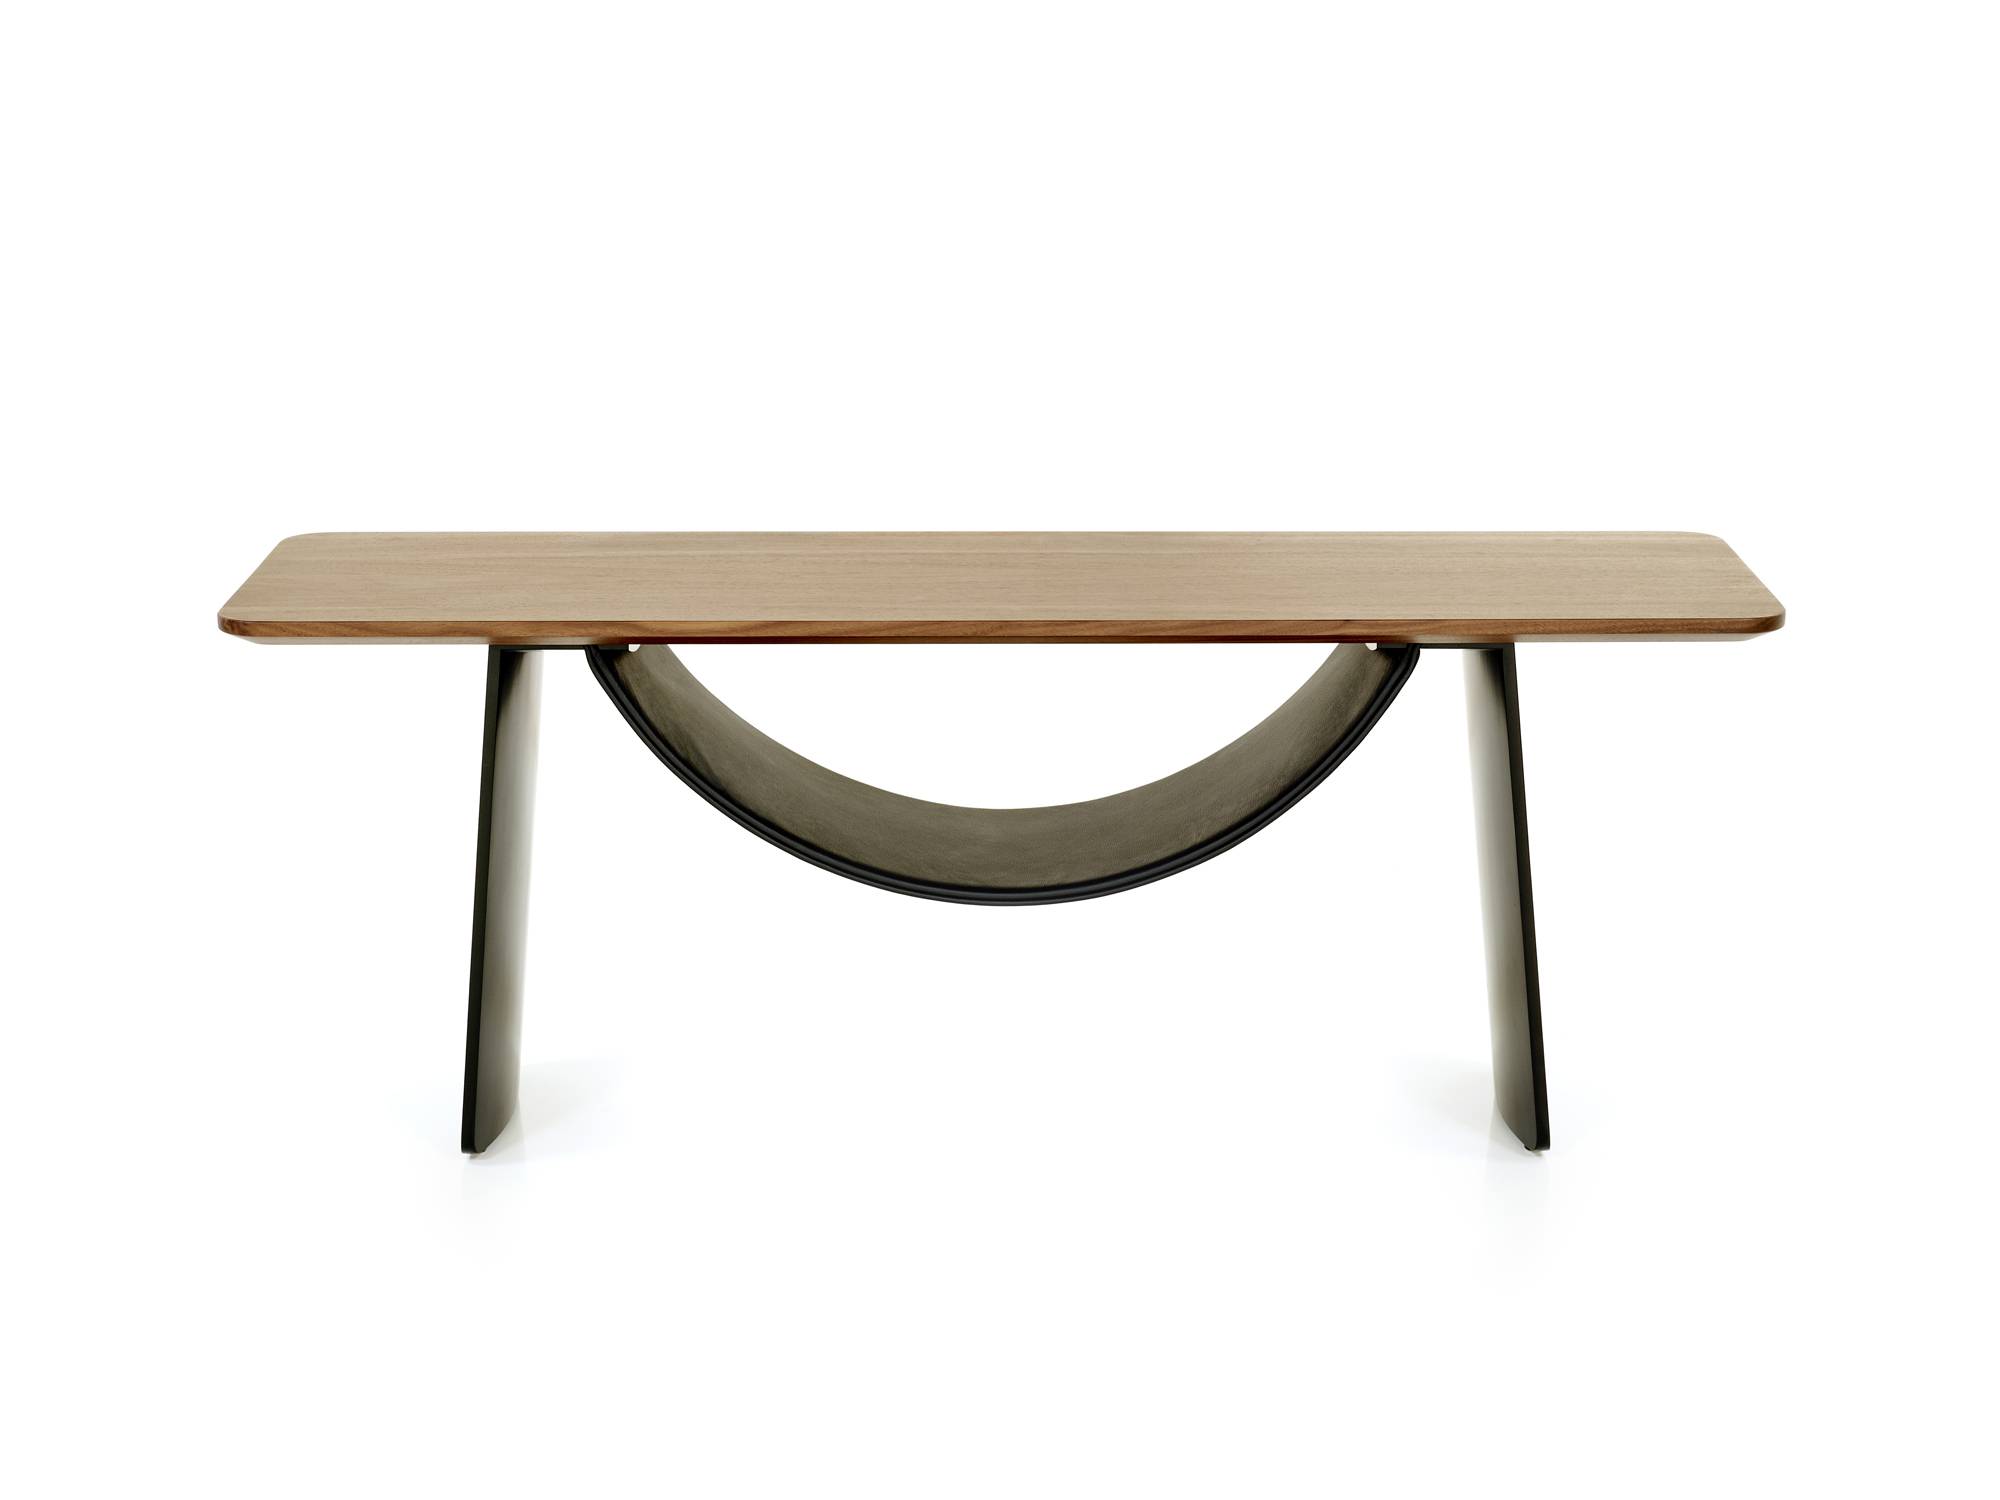 Melange Bridge Table For Wittmann - New project launched in IMM Cologne 2018